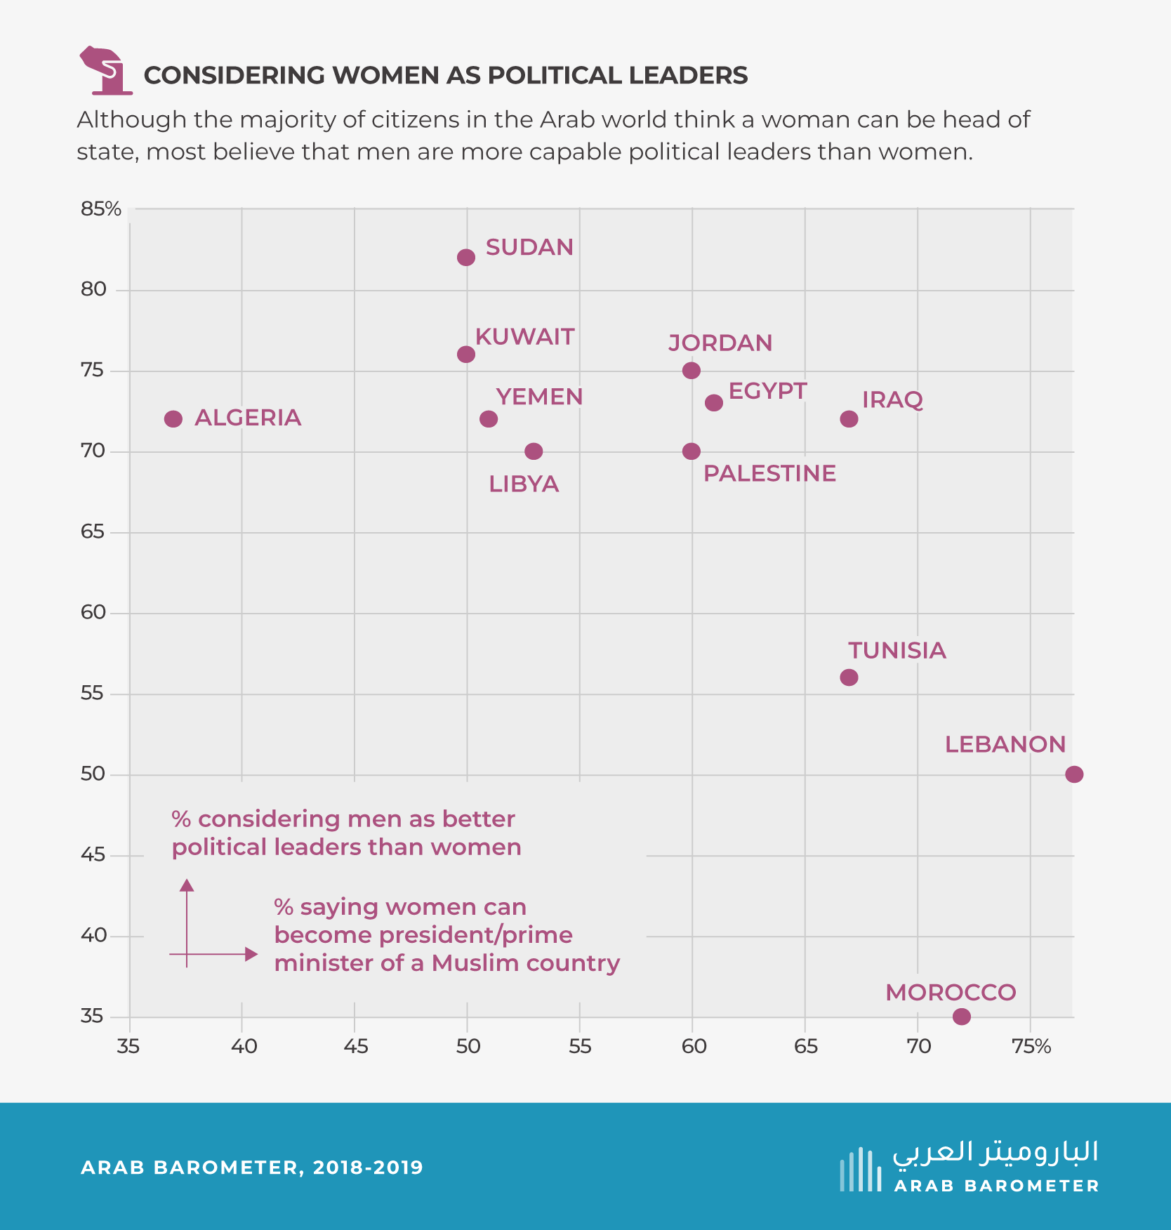 Opinion on Arab women and political power